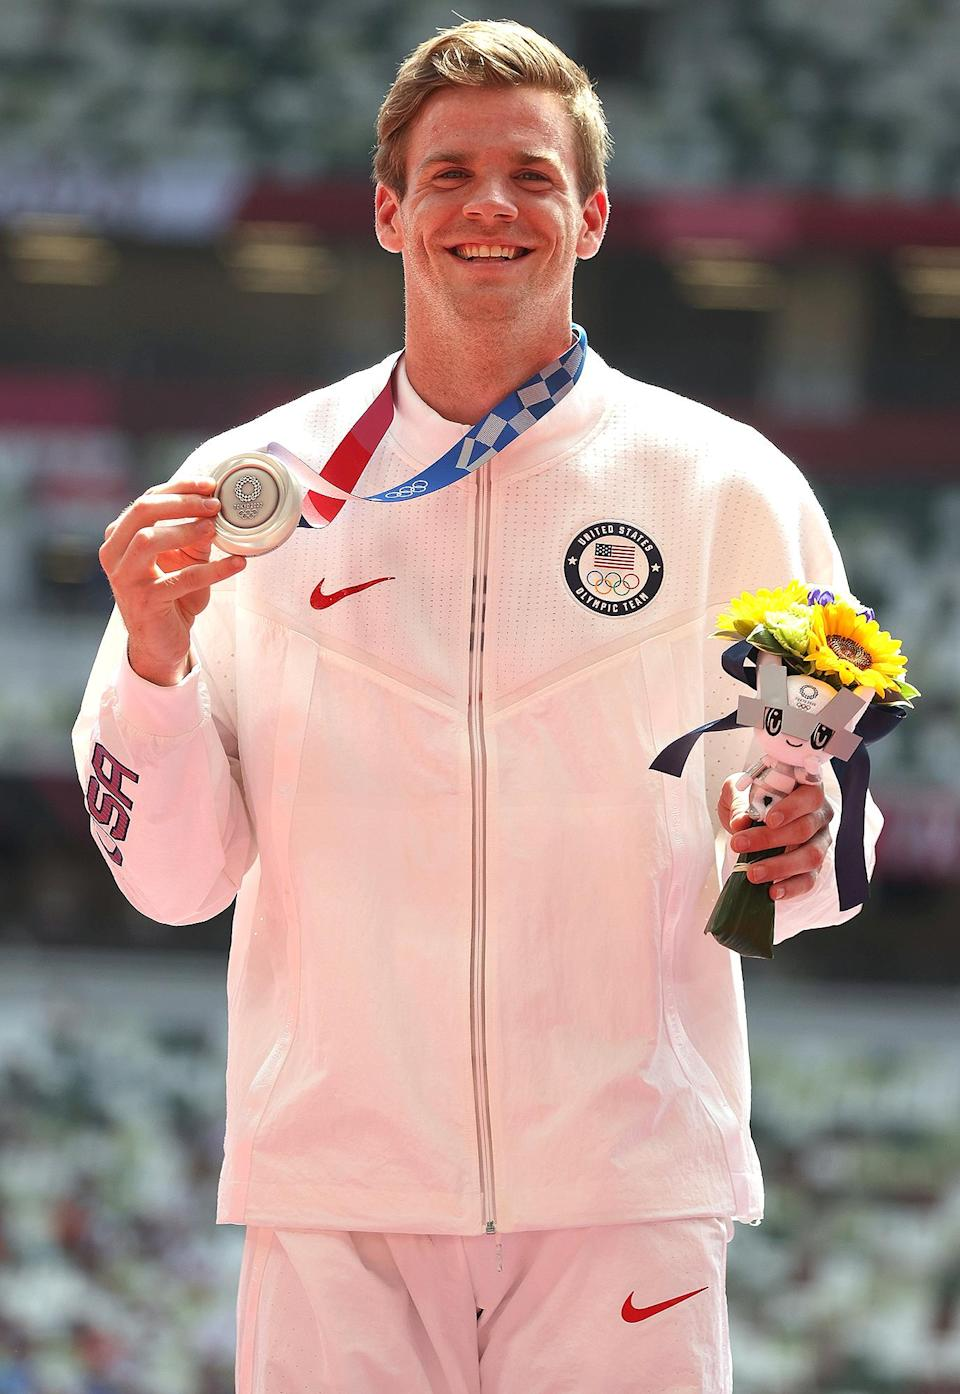 """<p>Biography: 23 years old</p> <p>Event: Men's pole vault</p> <p>Quote: """"I had a couple of good jumps at 6 meters, and I was happy to walk away with that.""""</p>"""